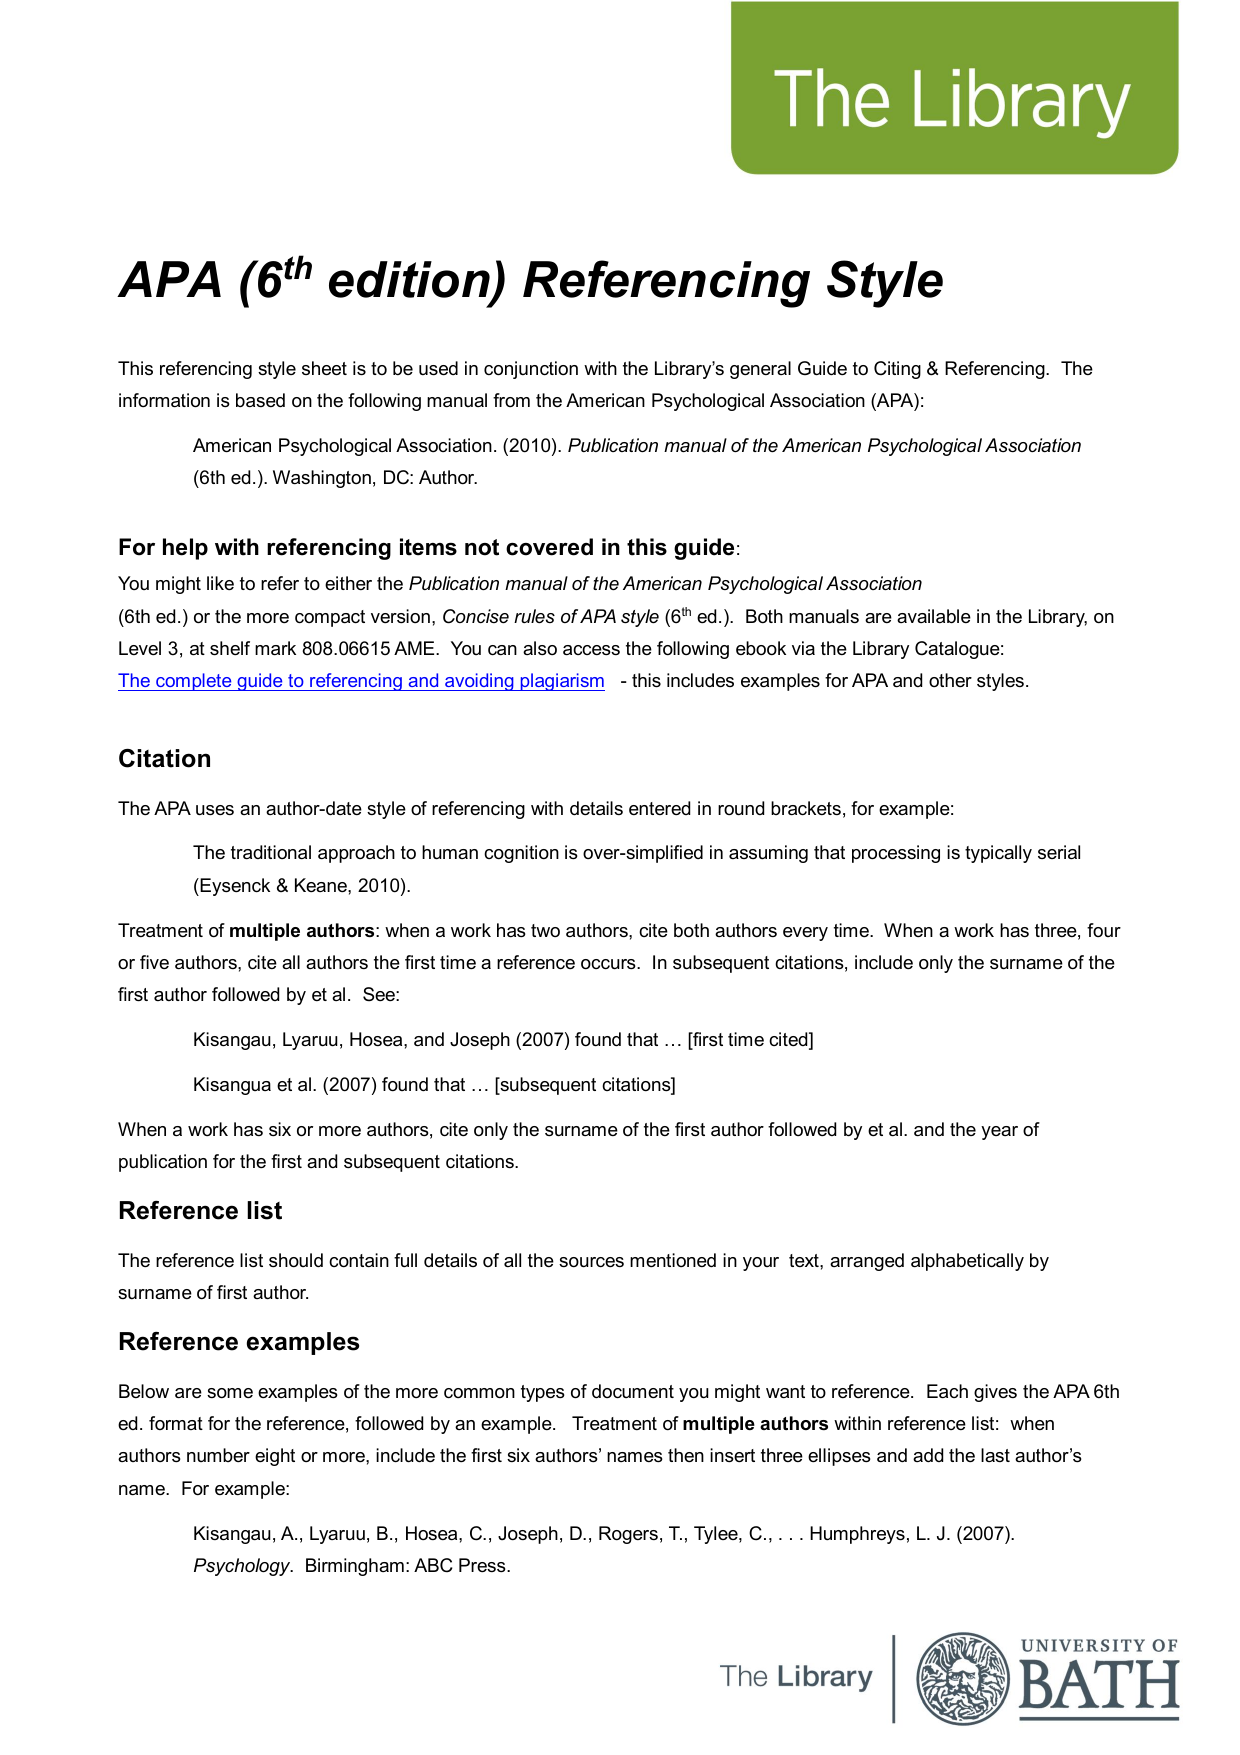 Sample essay apa 6th edition